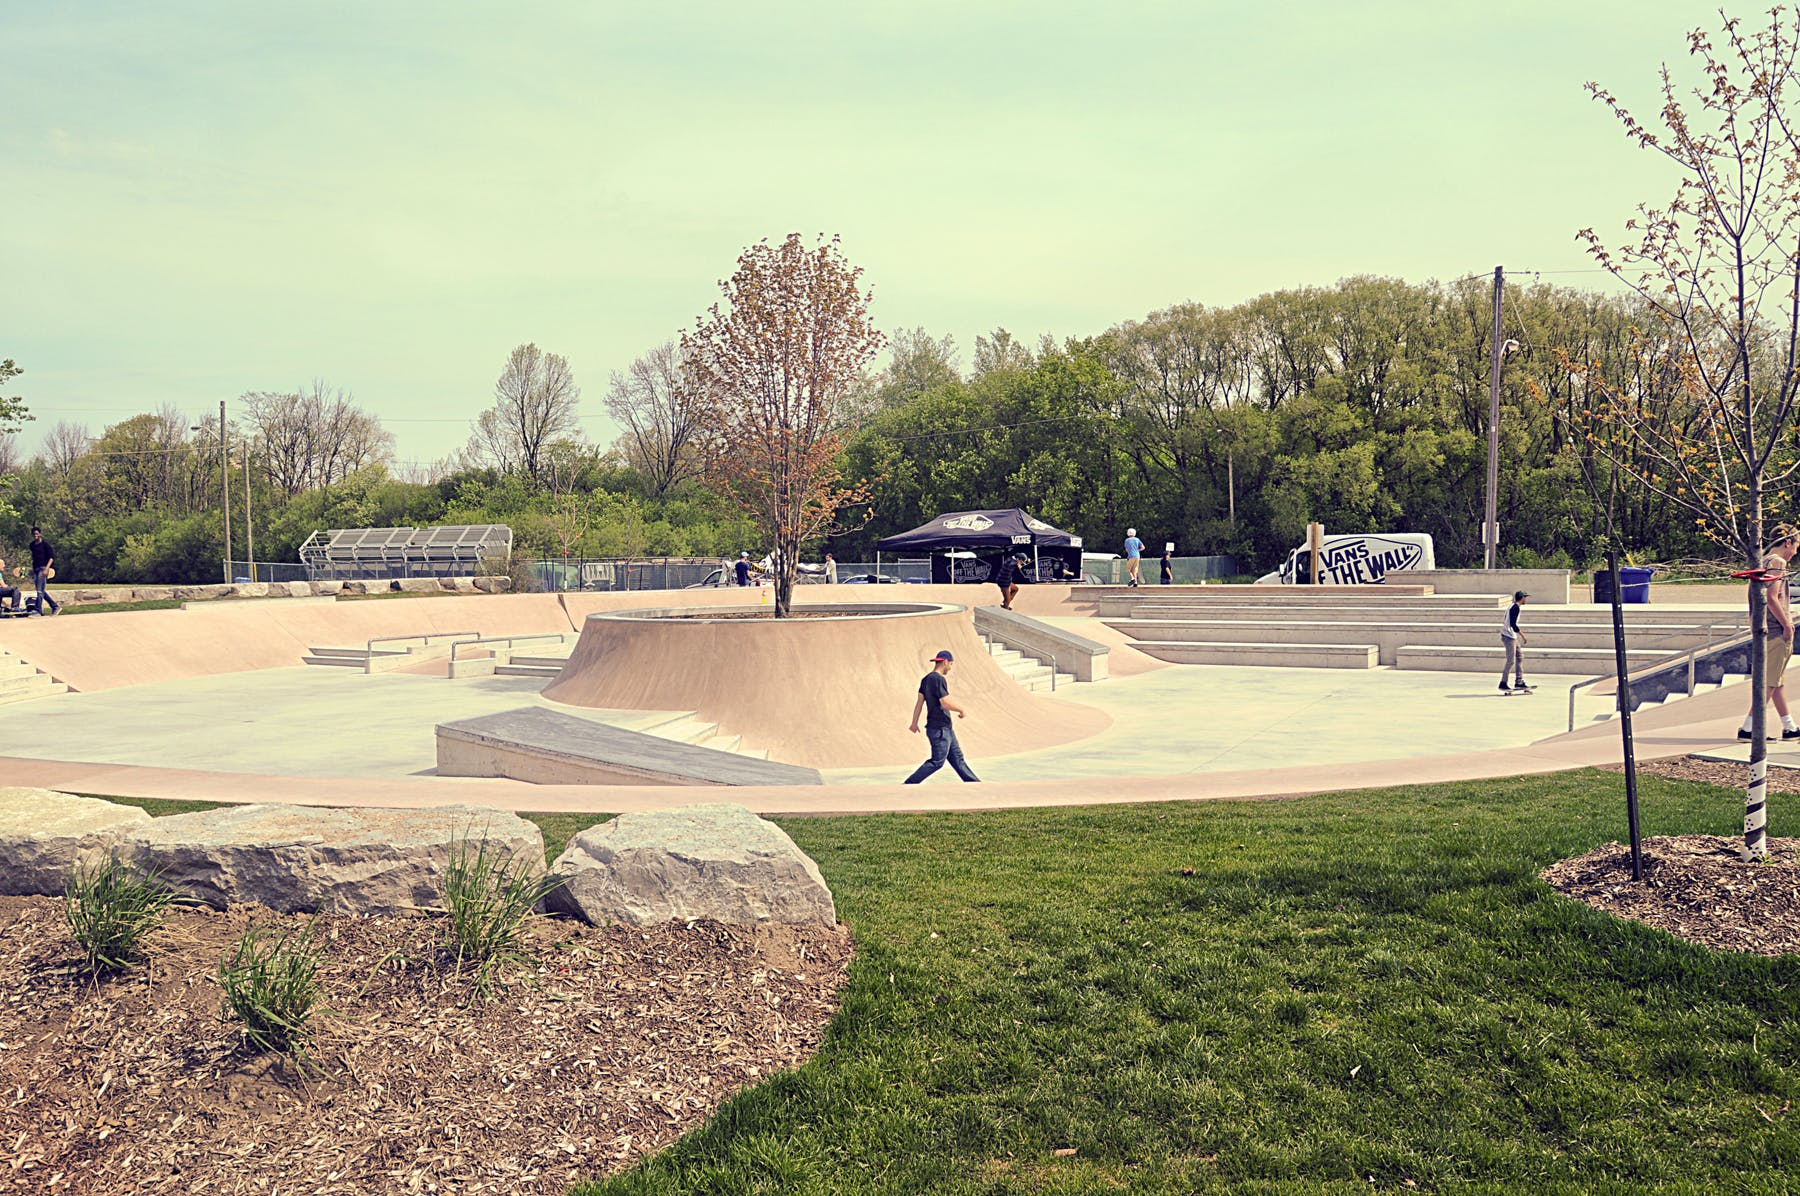 Skateboard park in Waterloo Park